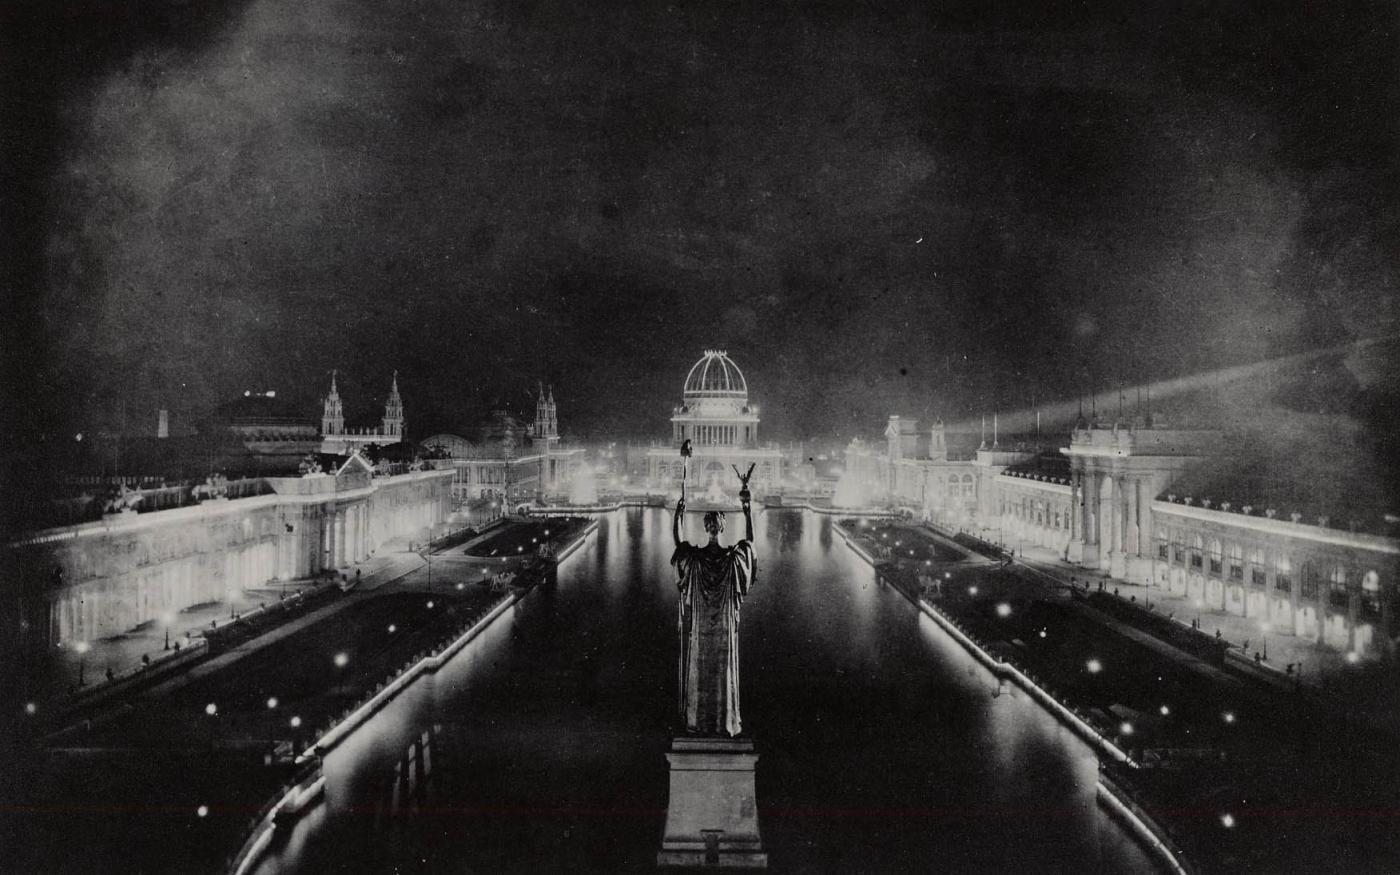 The World's Columbian Exposition of 1893 in Chicago